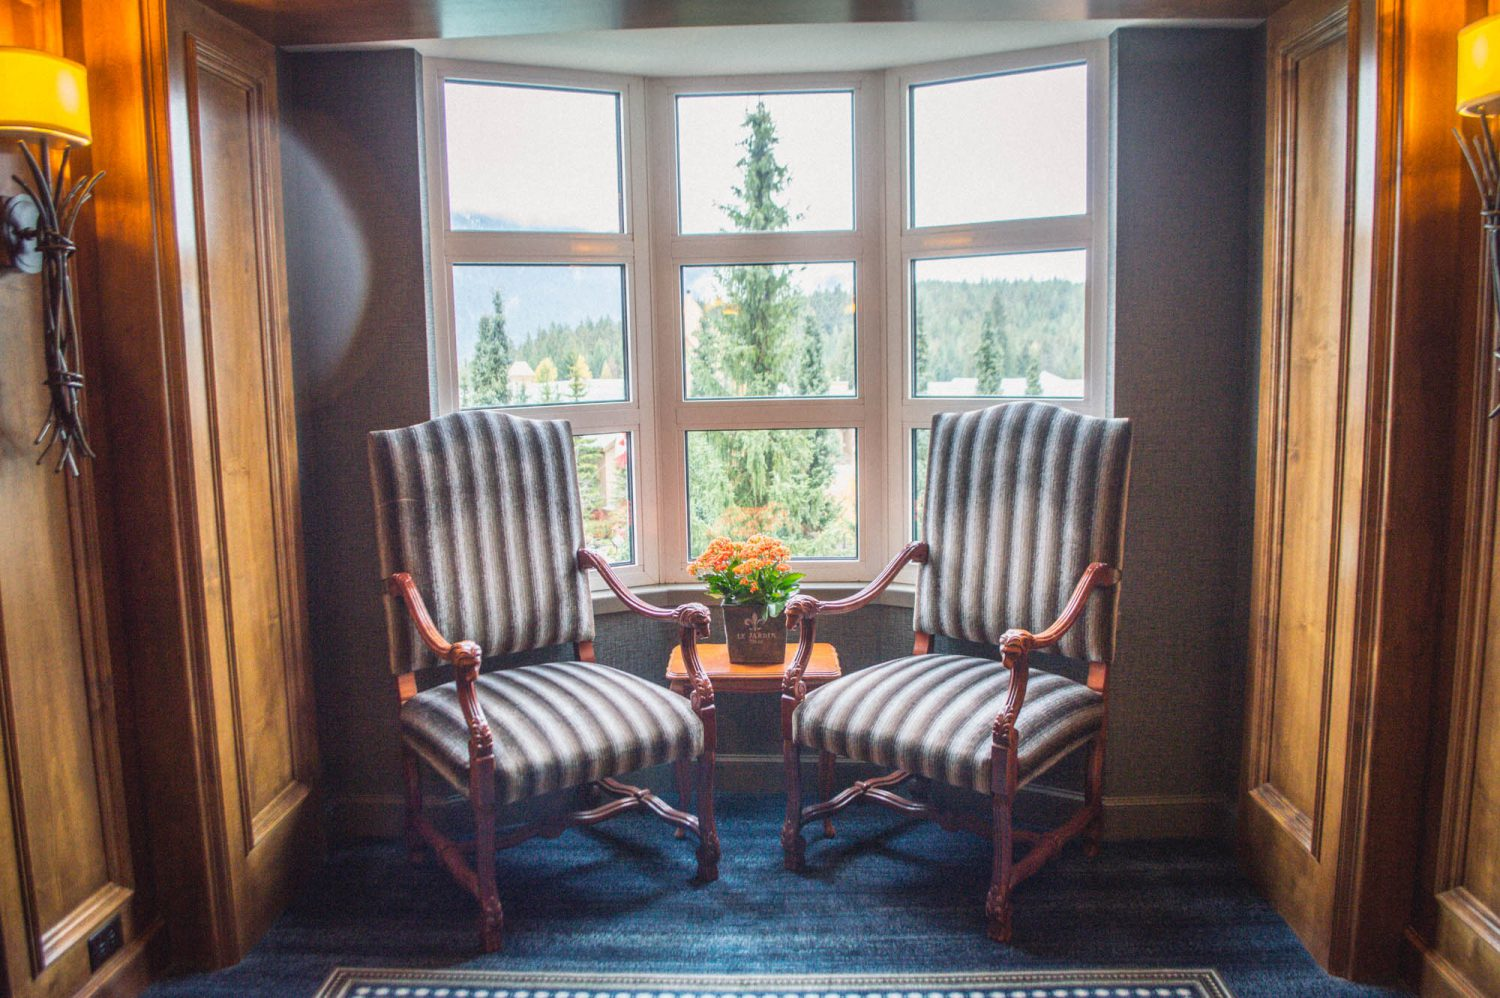 The perfect place to spend a romantic weekend or Bachelorette party! The Fairmont Whistler is a great choice for anyone looking to spend a few days in Whistler.